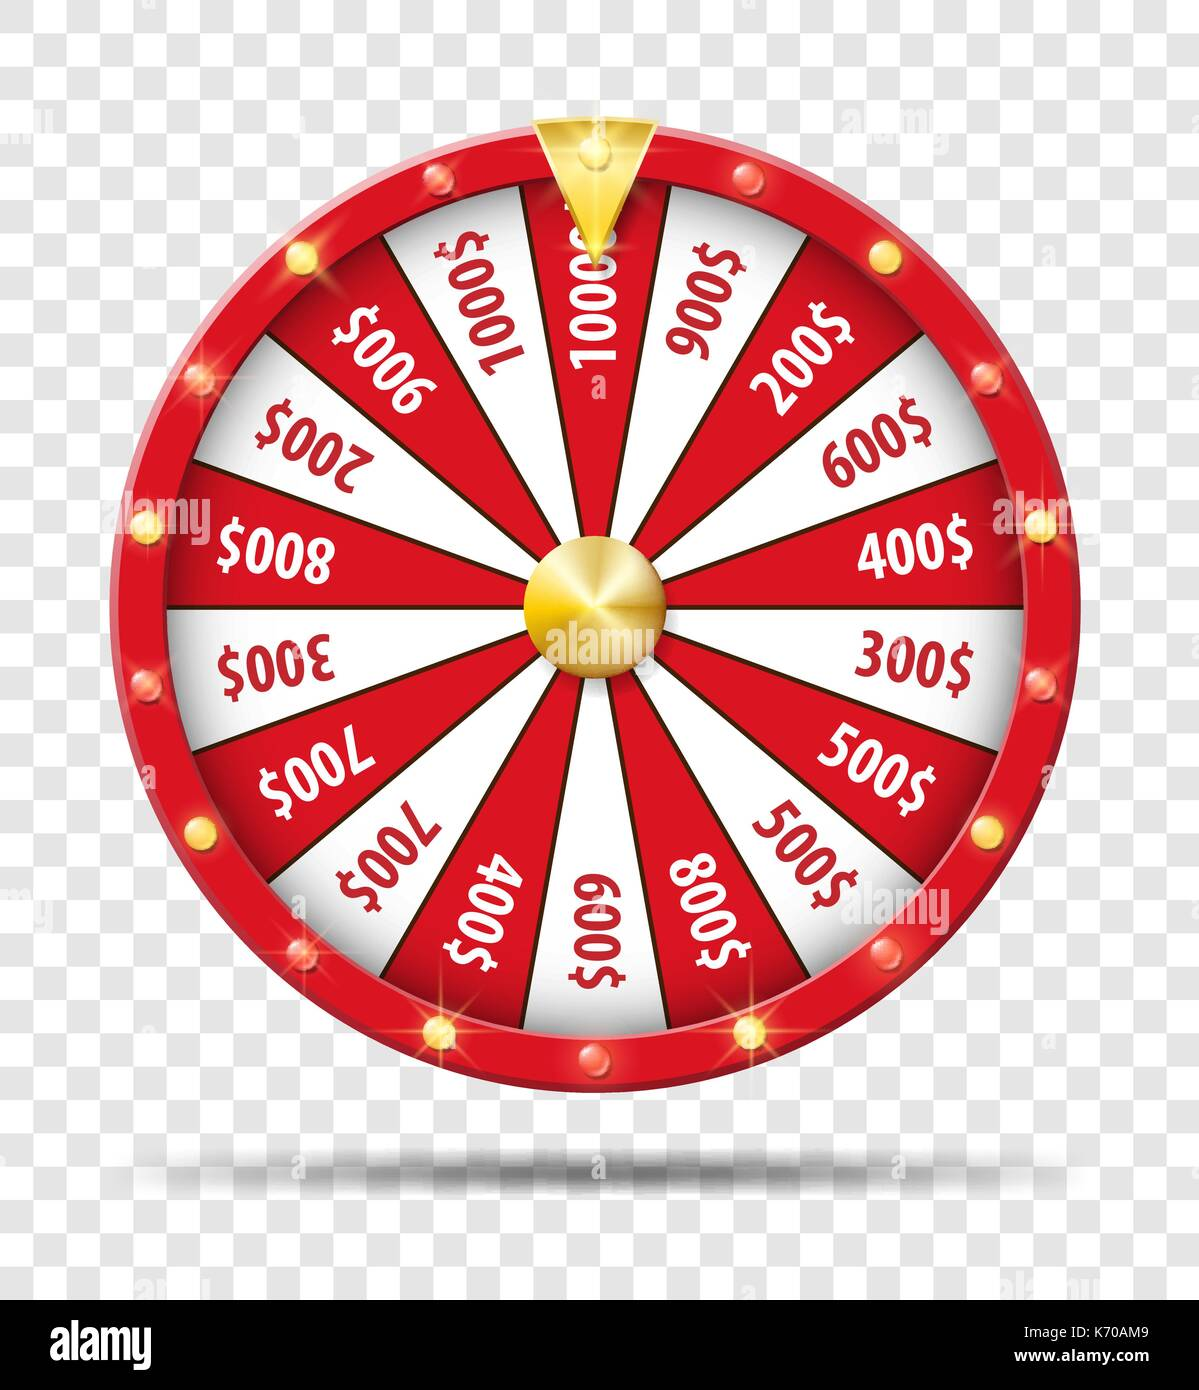 Red Wheel Of Fortune isolated on transparent background. Casino lottery luck game. Win fortune Wheel roulette. Vector illustration. - Stock Vector